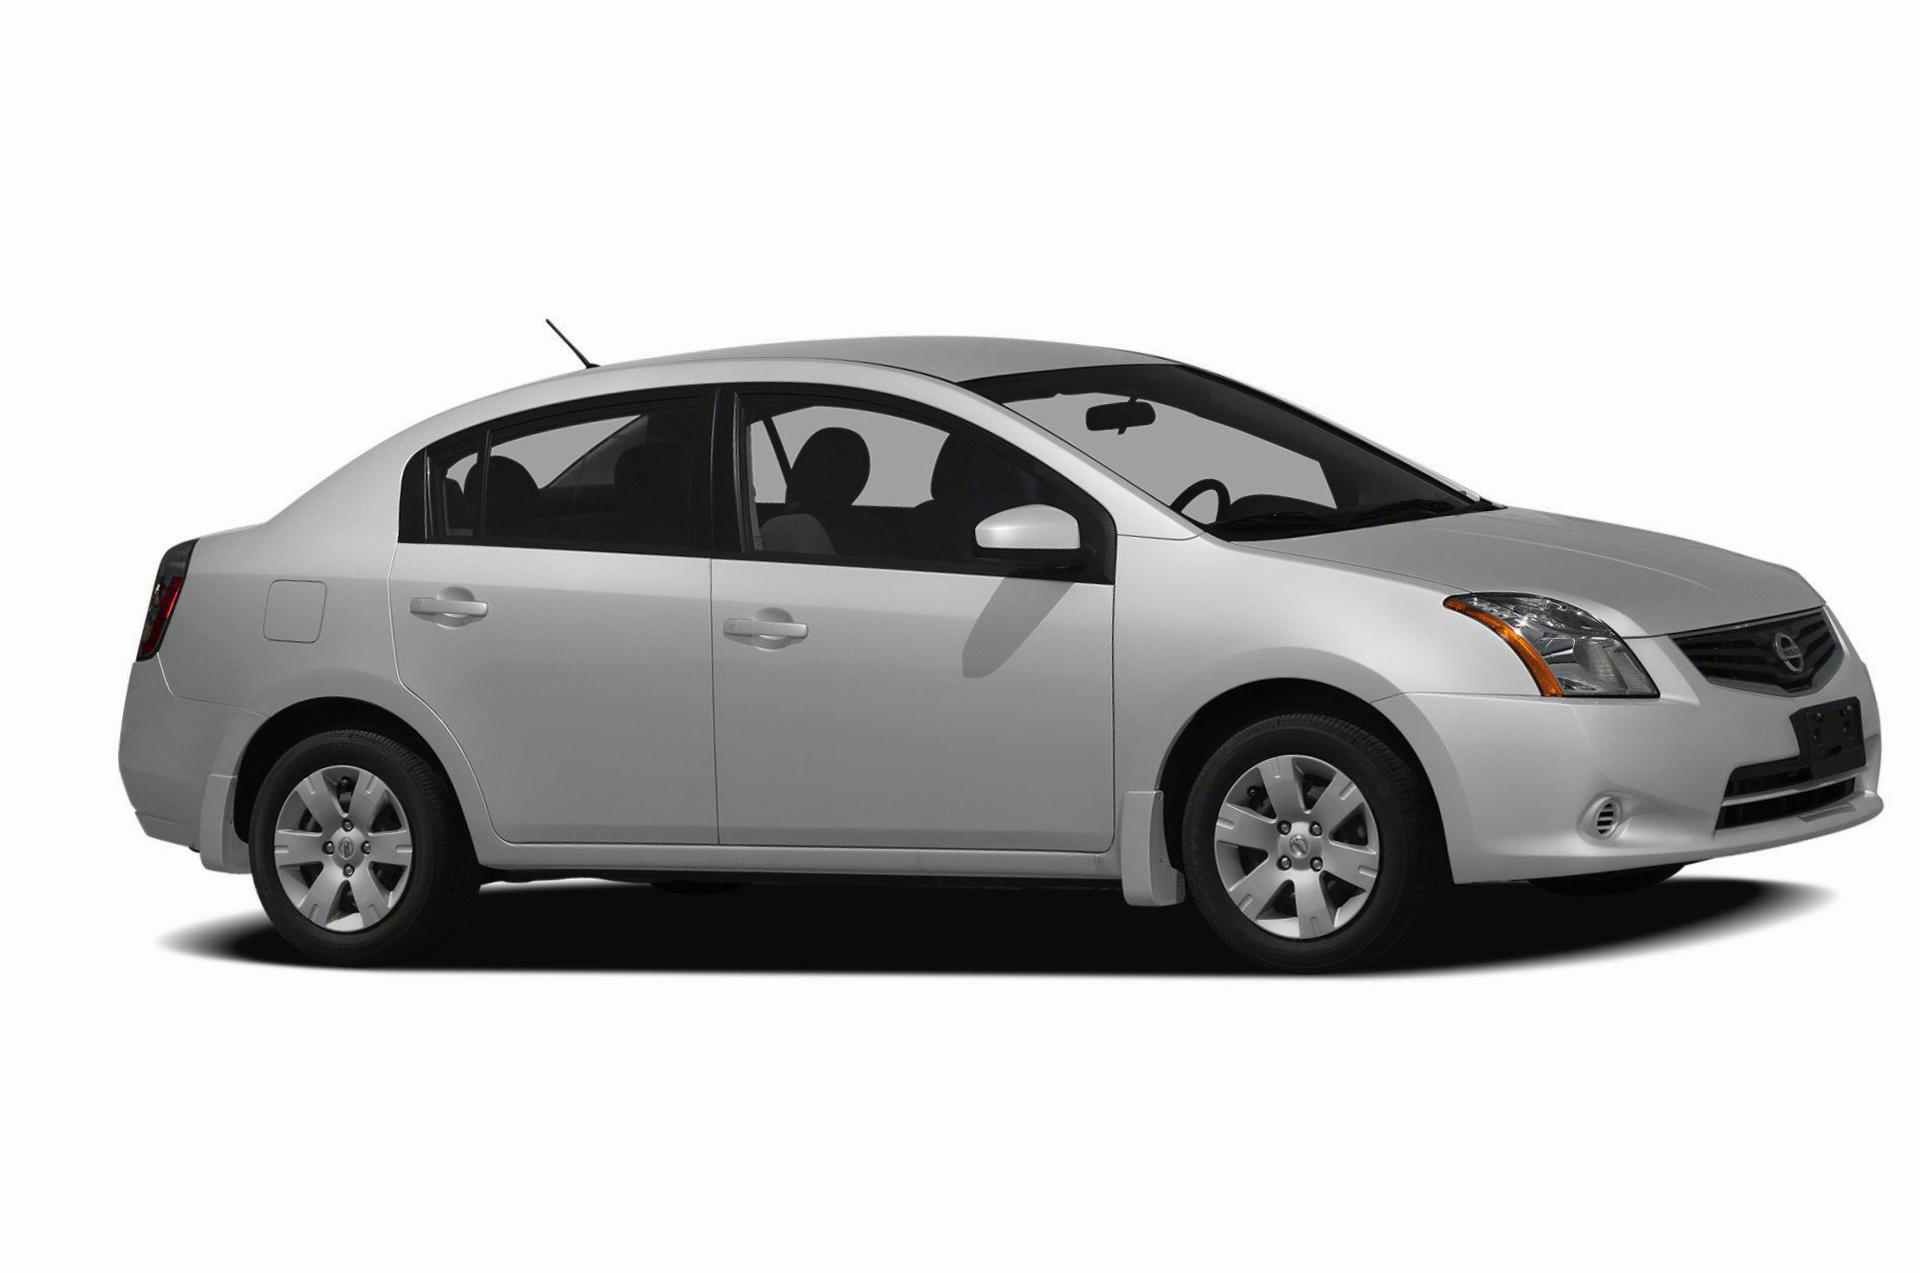 Nissan Sentra cost 2010